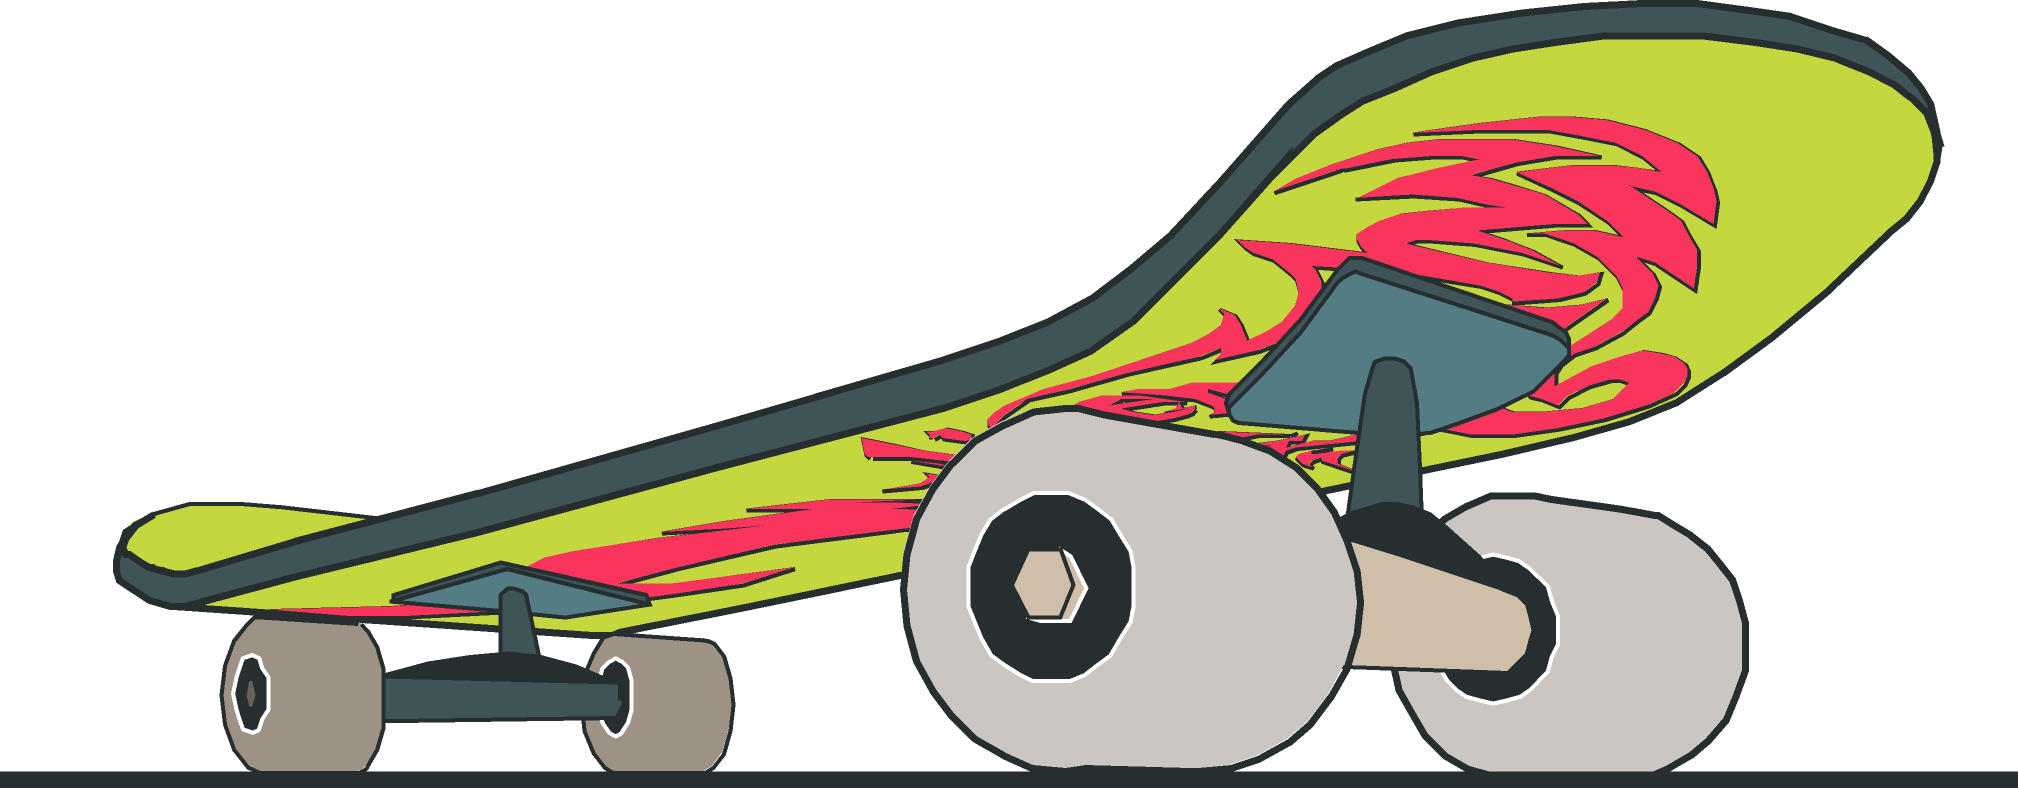 Skateboard Close Up With Design Free Vector 4vector